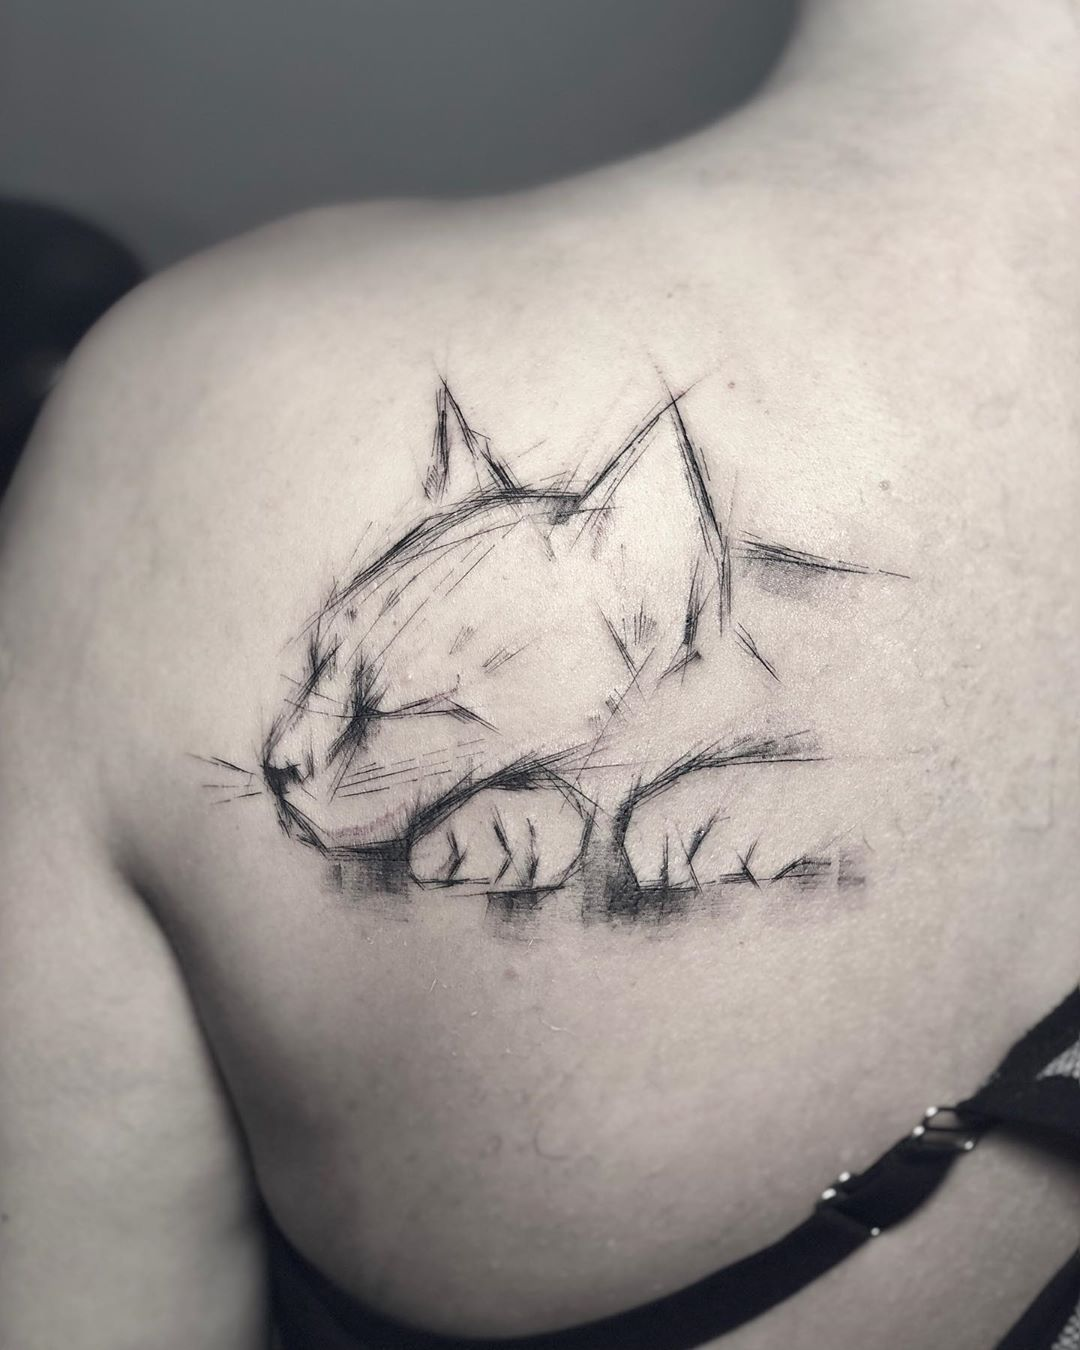 Pomalu Tattoo On Instagram Berlin 4 6 07 Available Appointments And Designs Done At In 2020 Cat Tattoo Designs Black Cat Tattoos Cute Cat Tattoo